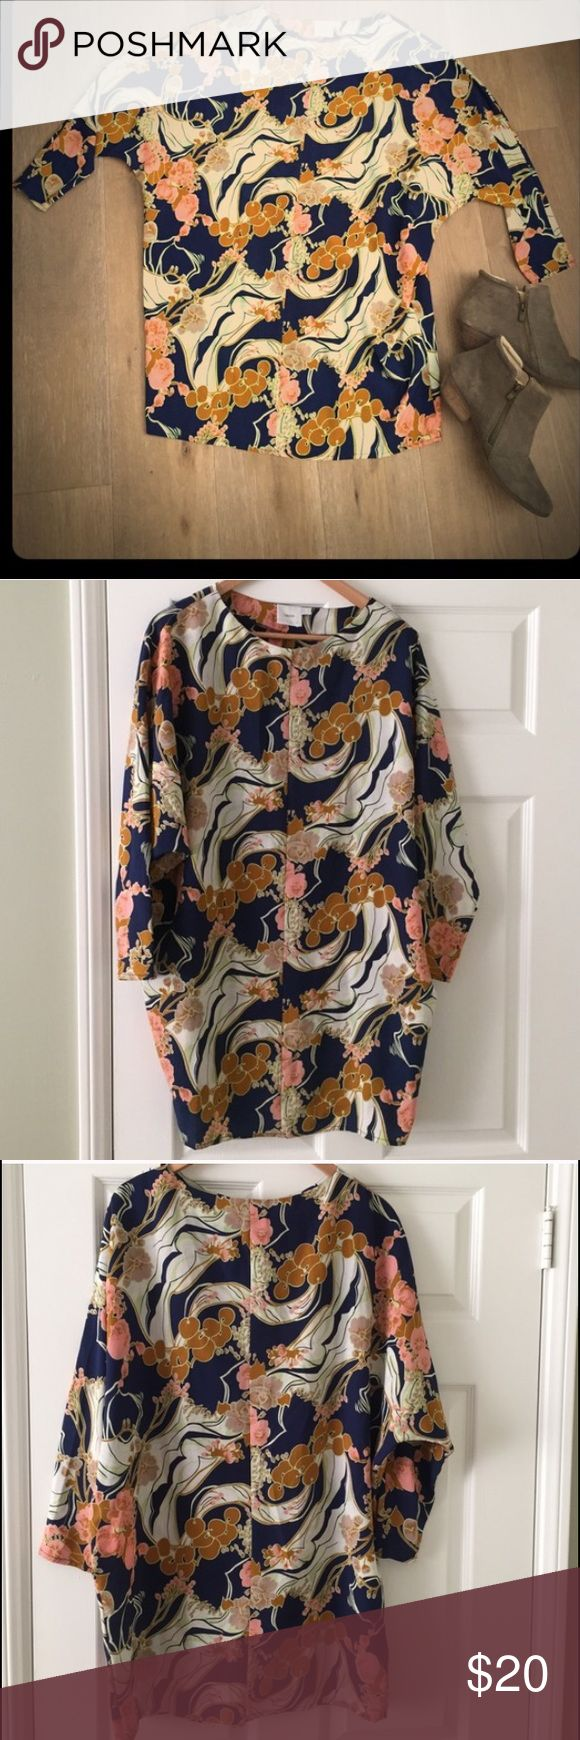 Asos Maternity Floral Mini Dress size 4 This is the perfect fall maternity dress! The colors are amazing. Brand new, tags removed. 100% Polyester ASOS Maternity Dresses Mini